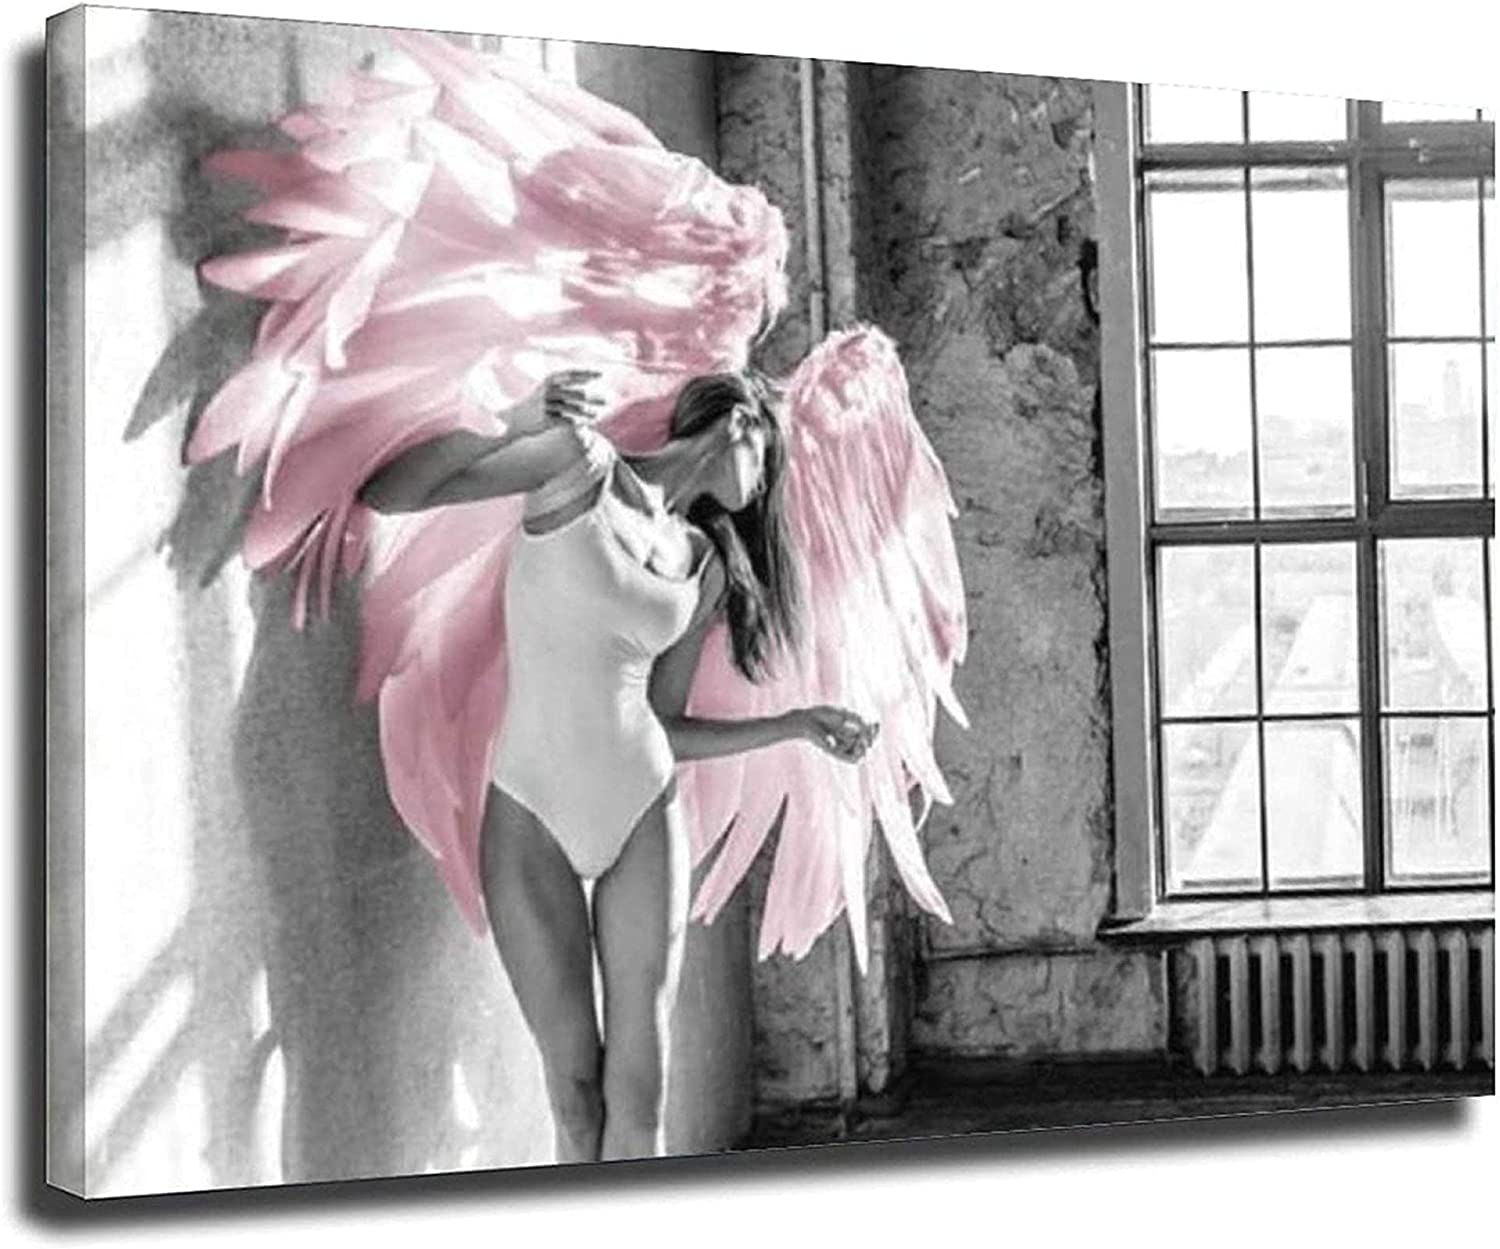 Poster Image 27.6x35.4in Max 81% OFF 70x90cm Online limited product No Angel Pink Feath Wing Frame